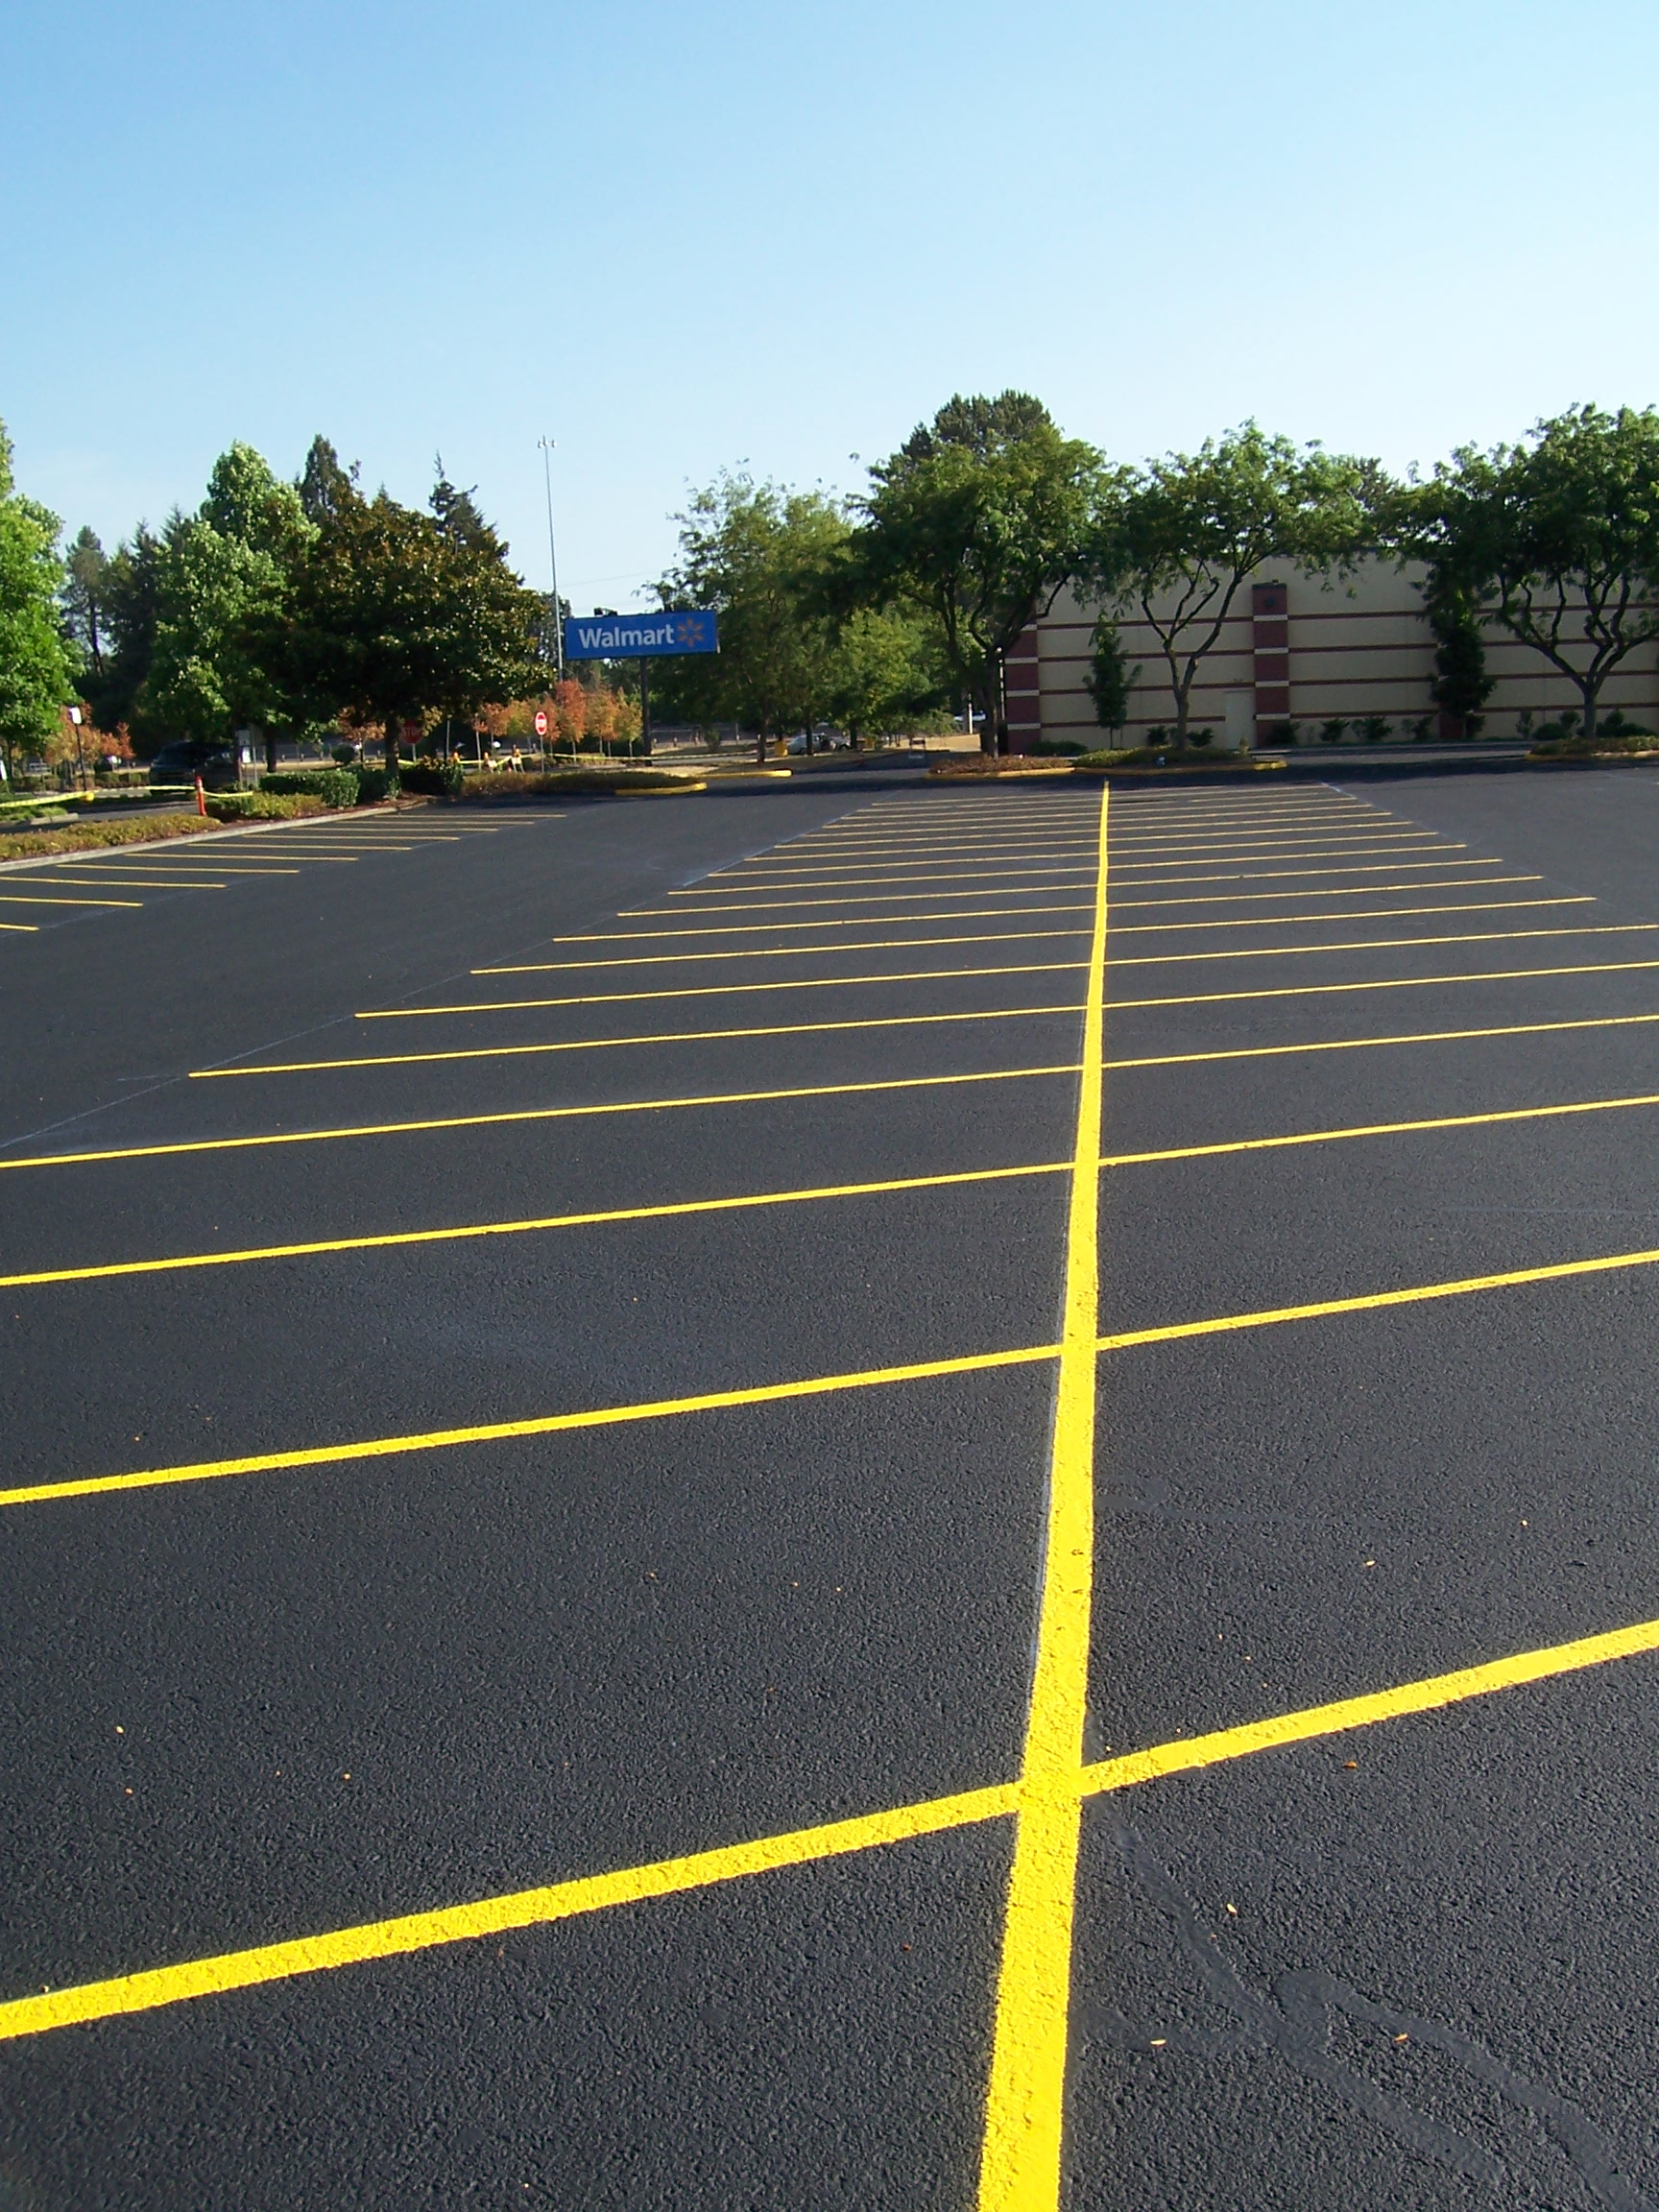 Brand new asphalt on a parking lot